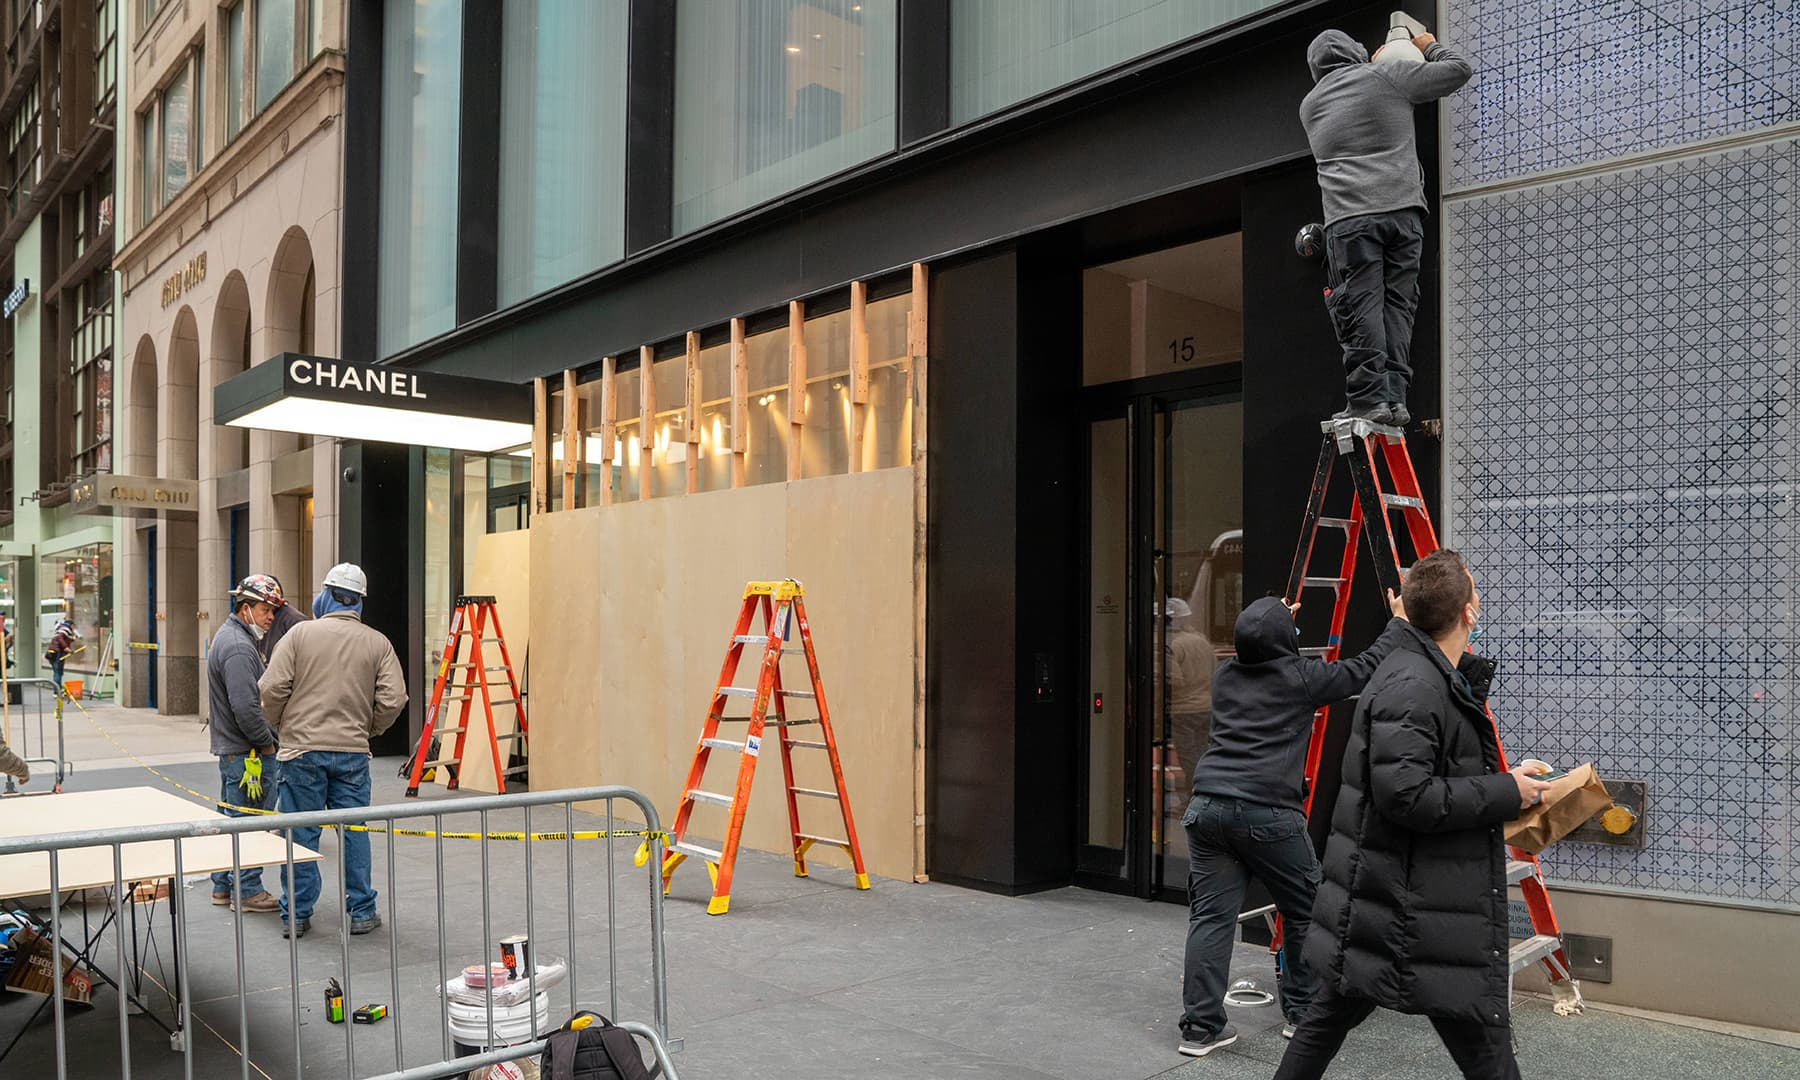 Workers board up a Chanel store in anticipation of unrest related to the presidential election on November 2 in New York City. — AFP